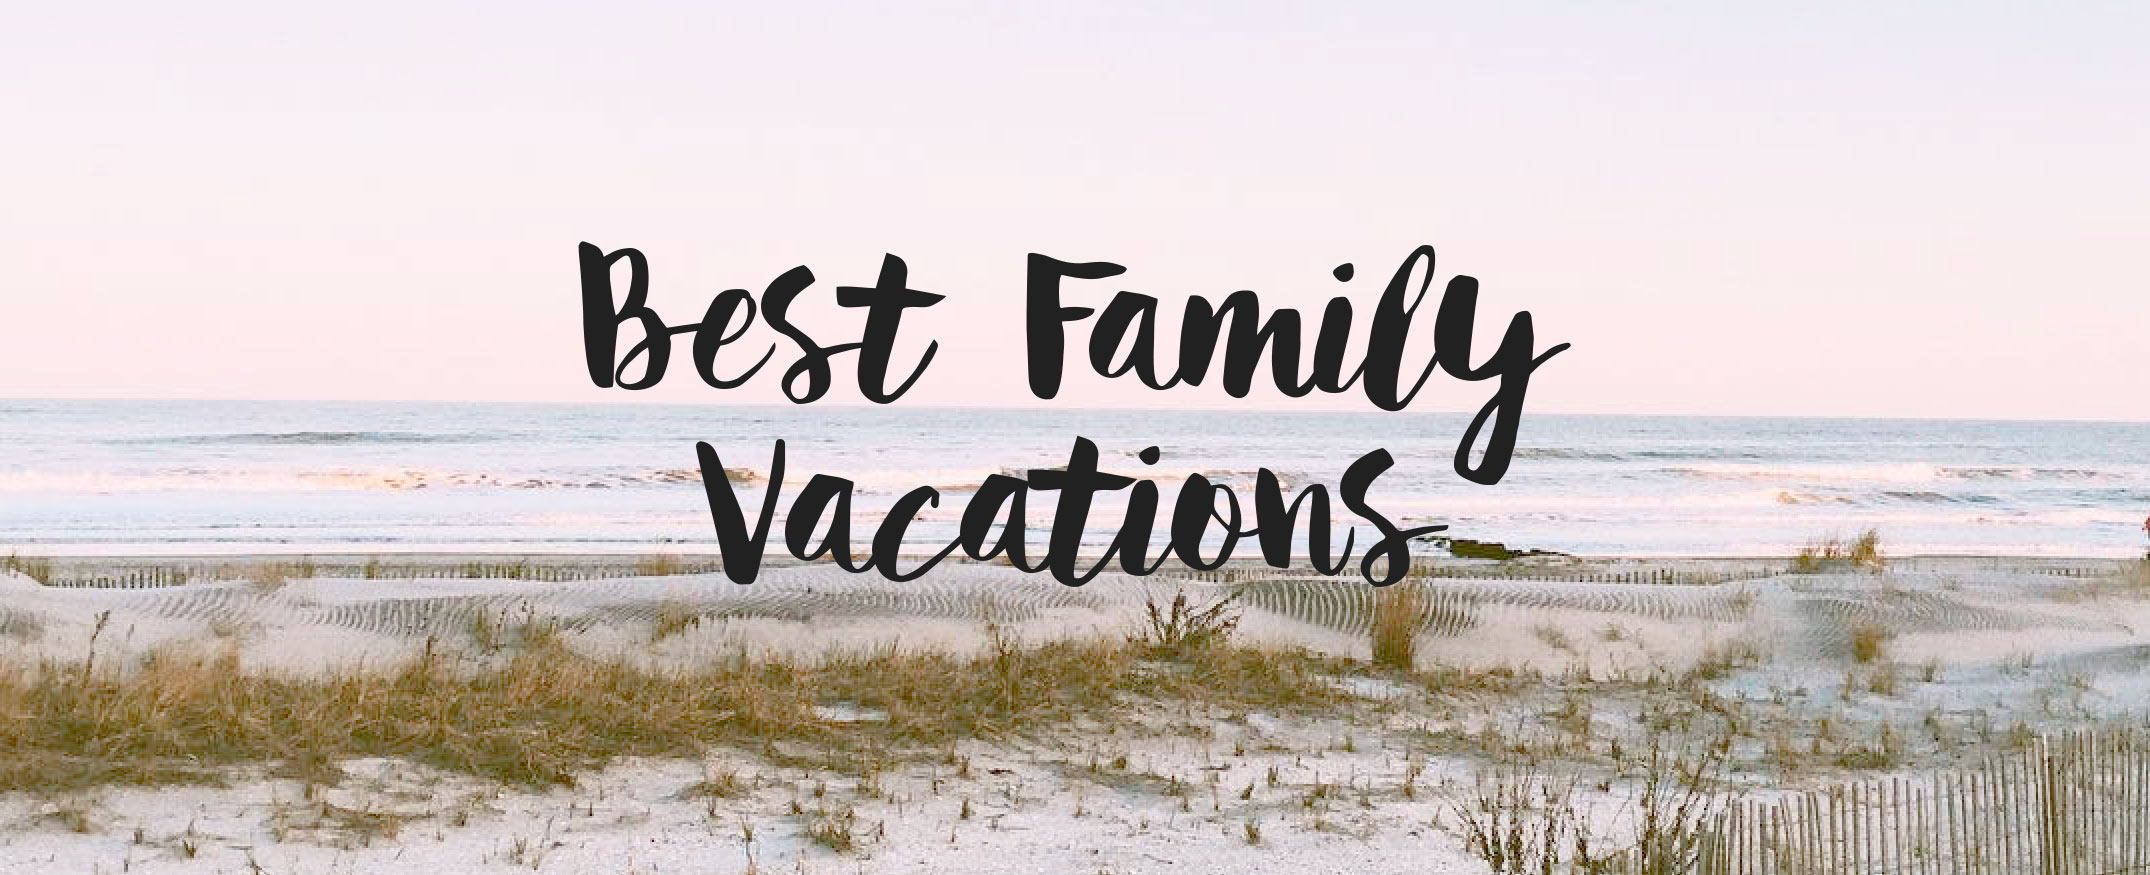 Best Family Vacation America